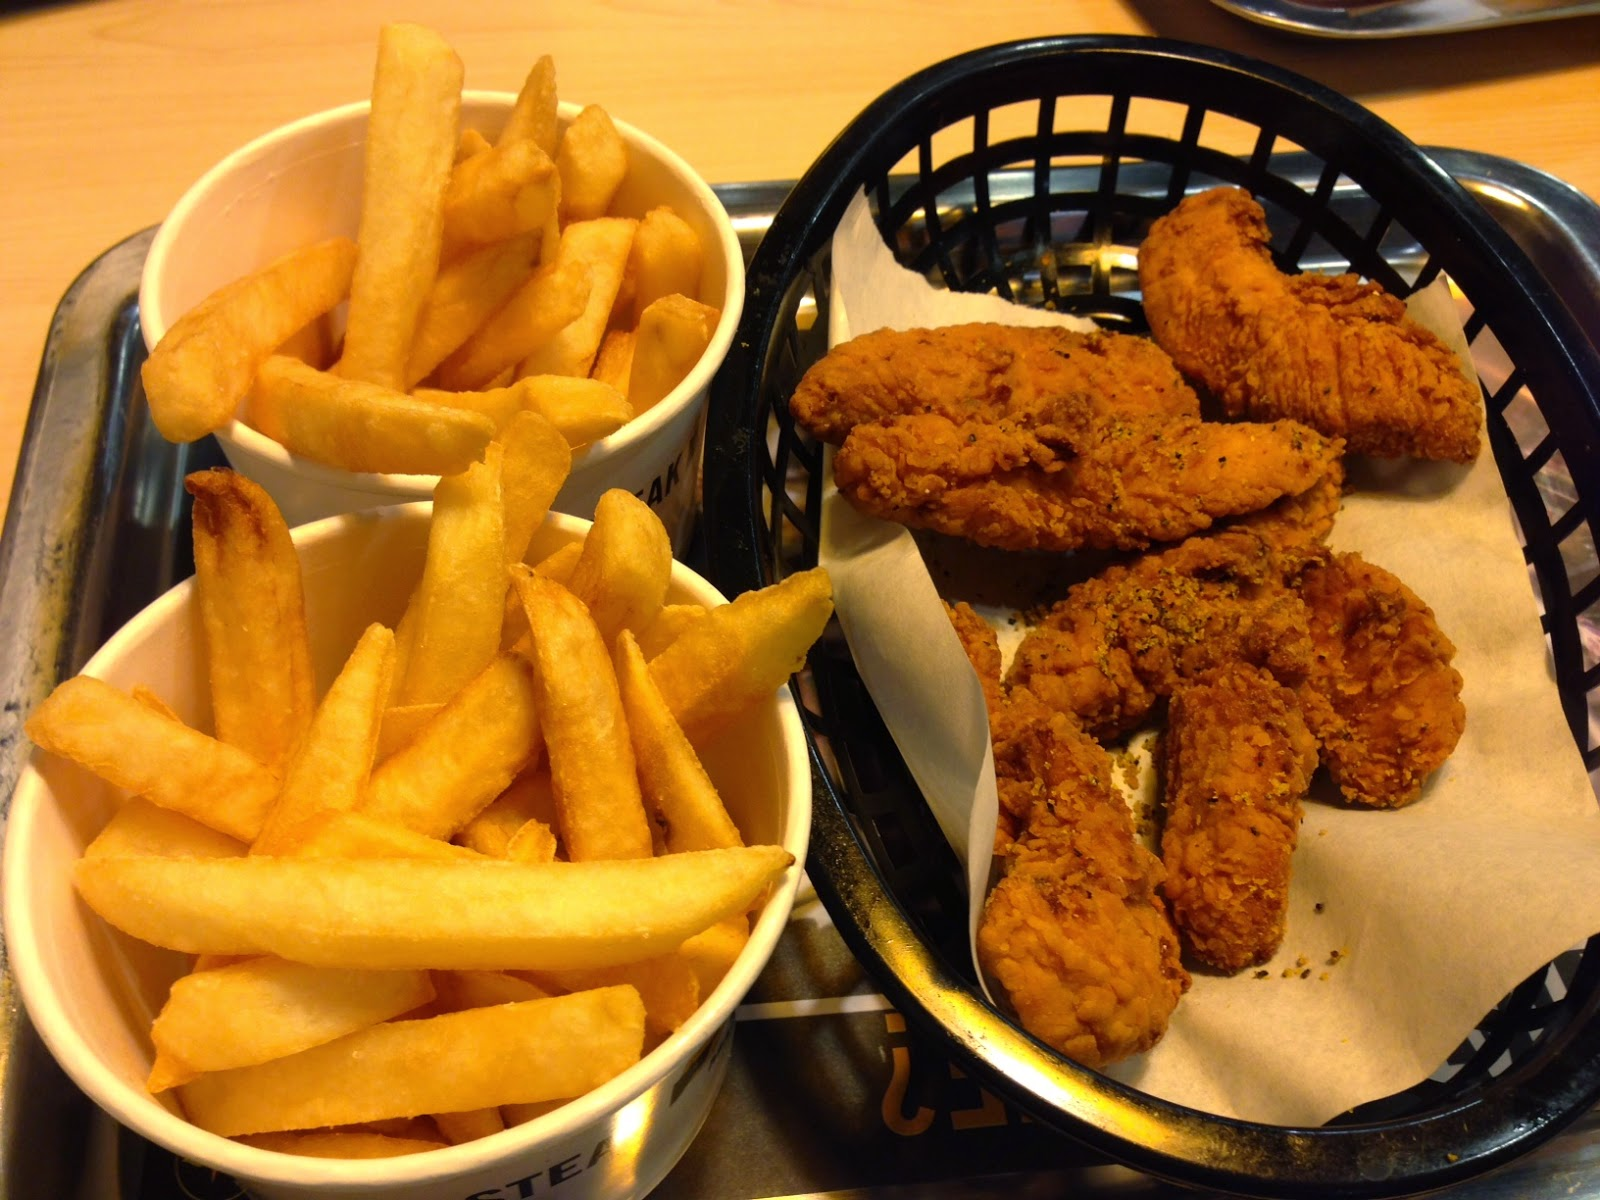 Lemon chicken tenders and fries.